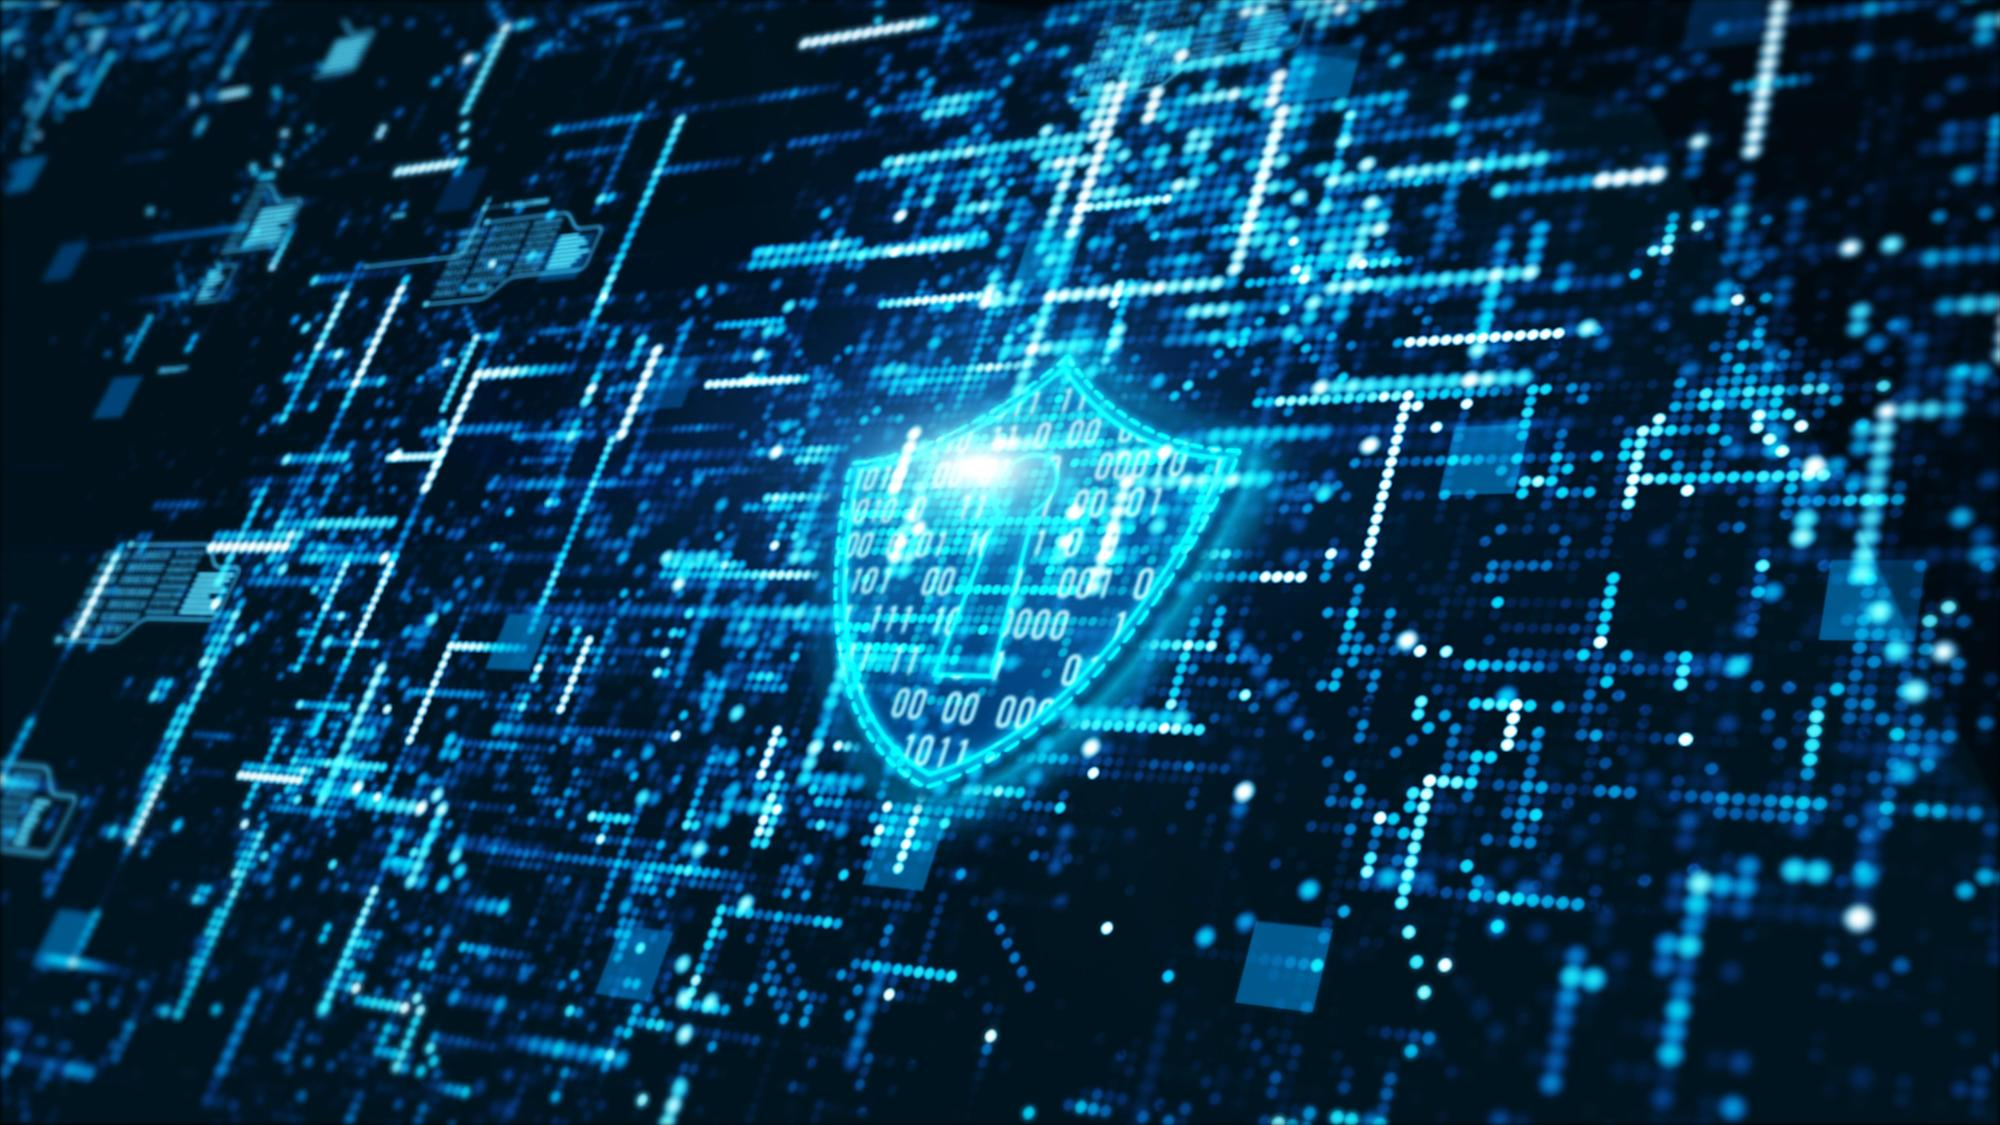 Sources: Palo Alto Networks acquired DevOps security startup Bridgecrew for around $200M